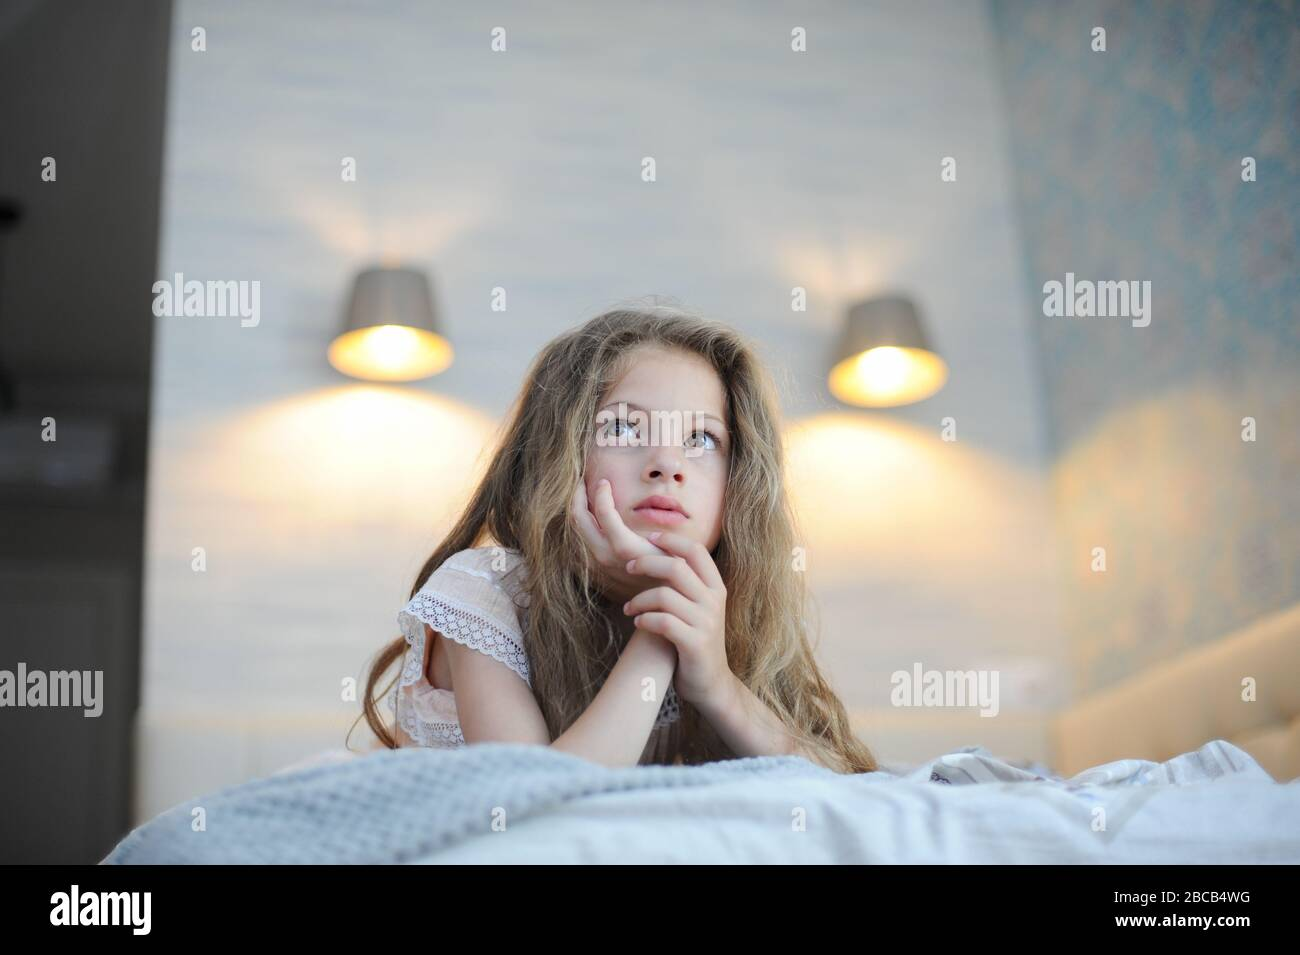 Beautiful Little Girl With Long Hair Lying On Bed In Bedroom Indoors At Home Watching Tv During Self Isolation Quarantine Stock Photo Alamy